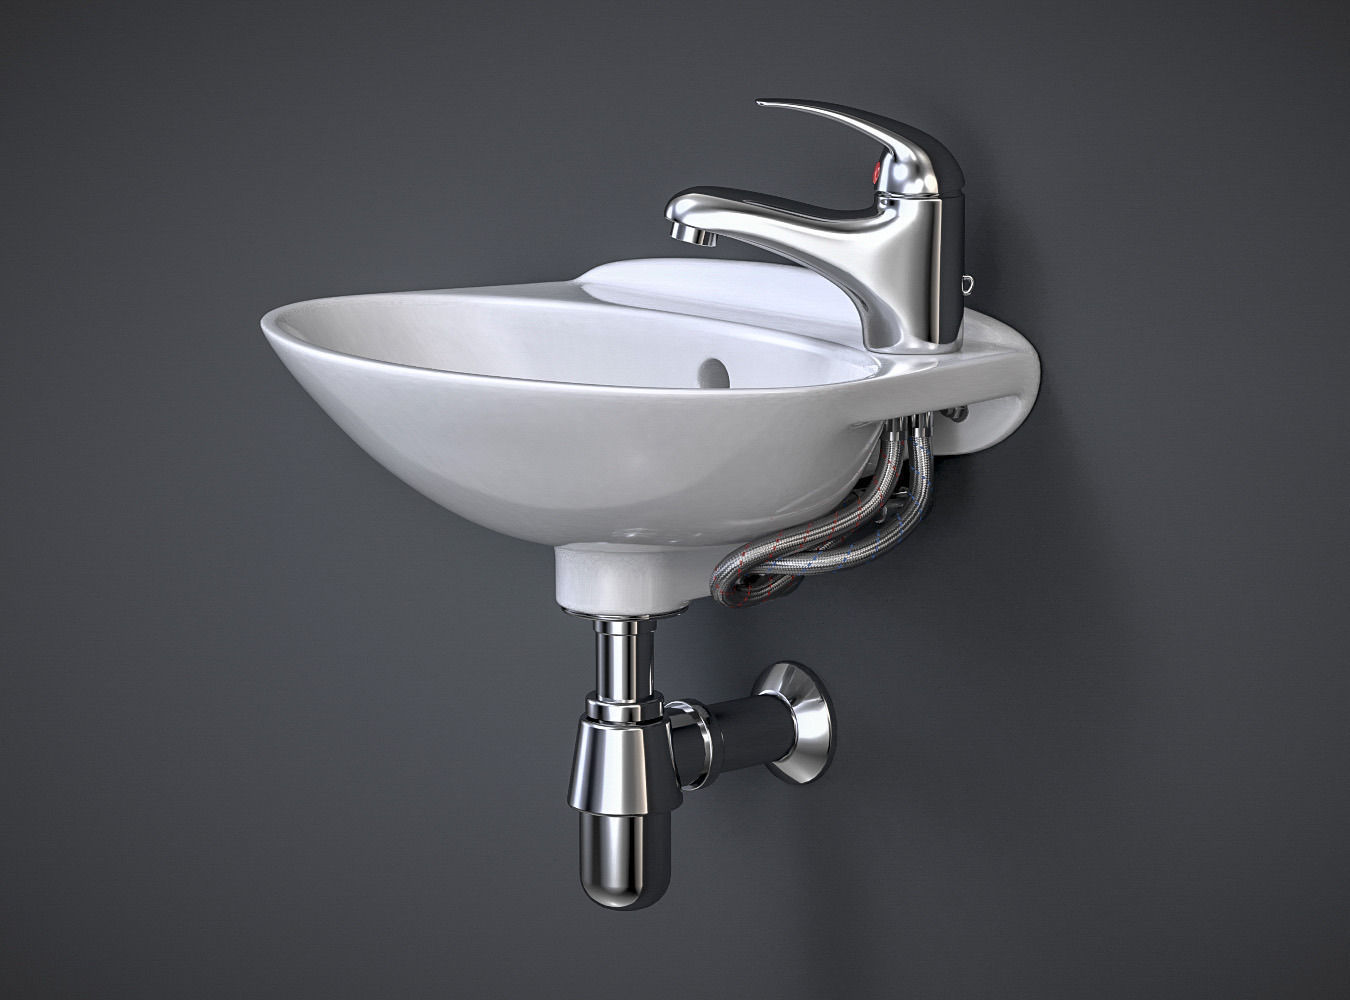 Sink Tap Modell : Compact bathroom sink with faucet d model cgtrader